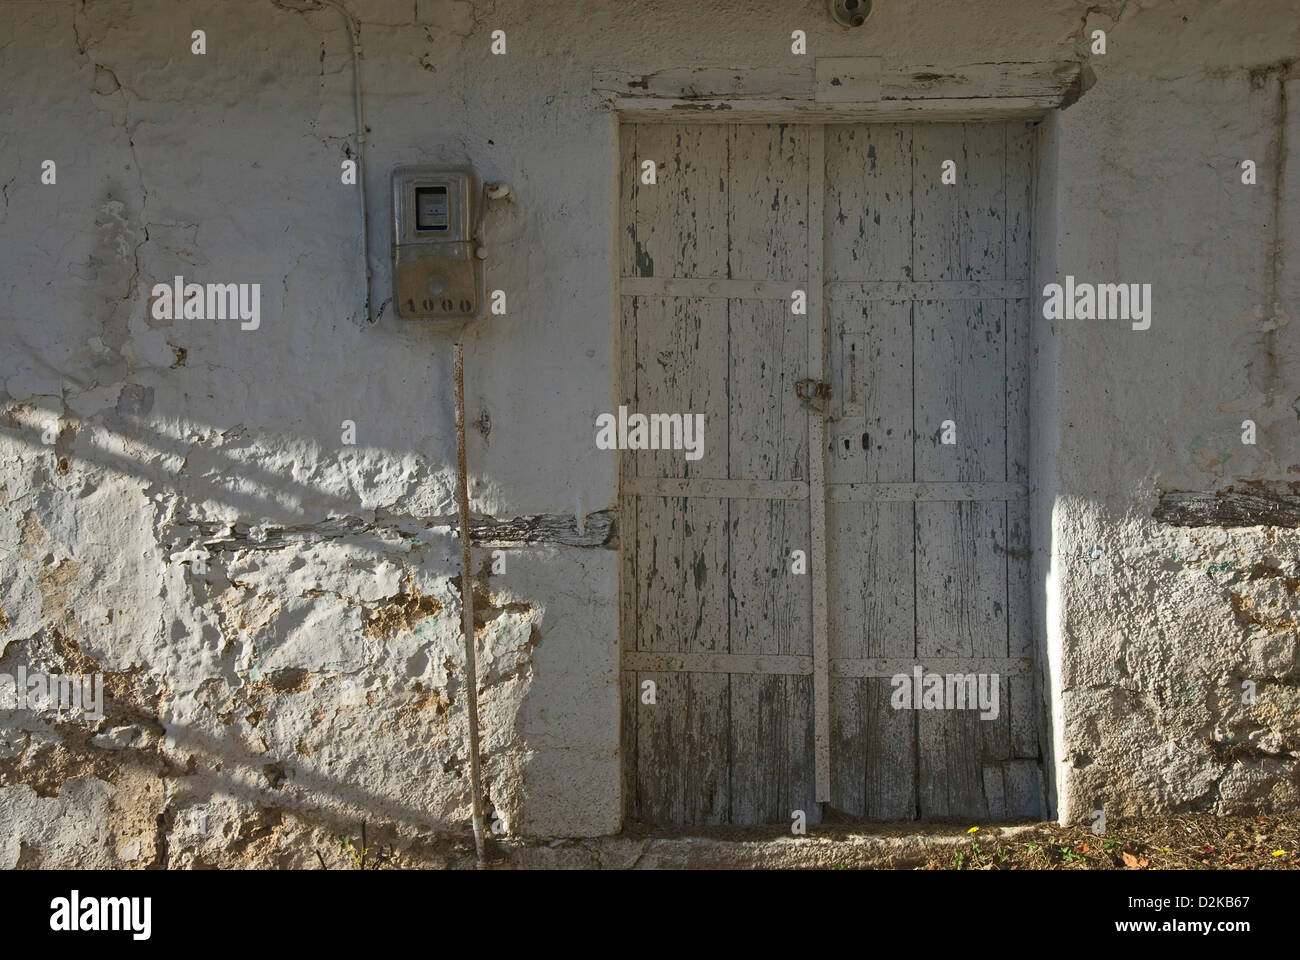 Old front door in weathered house front (Greece) - Stock Image